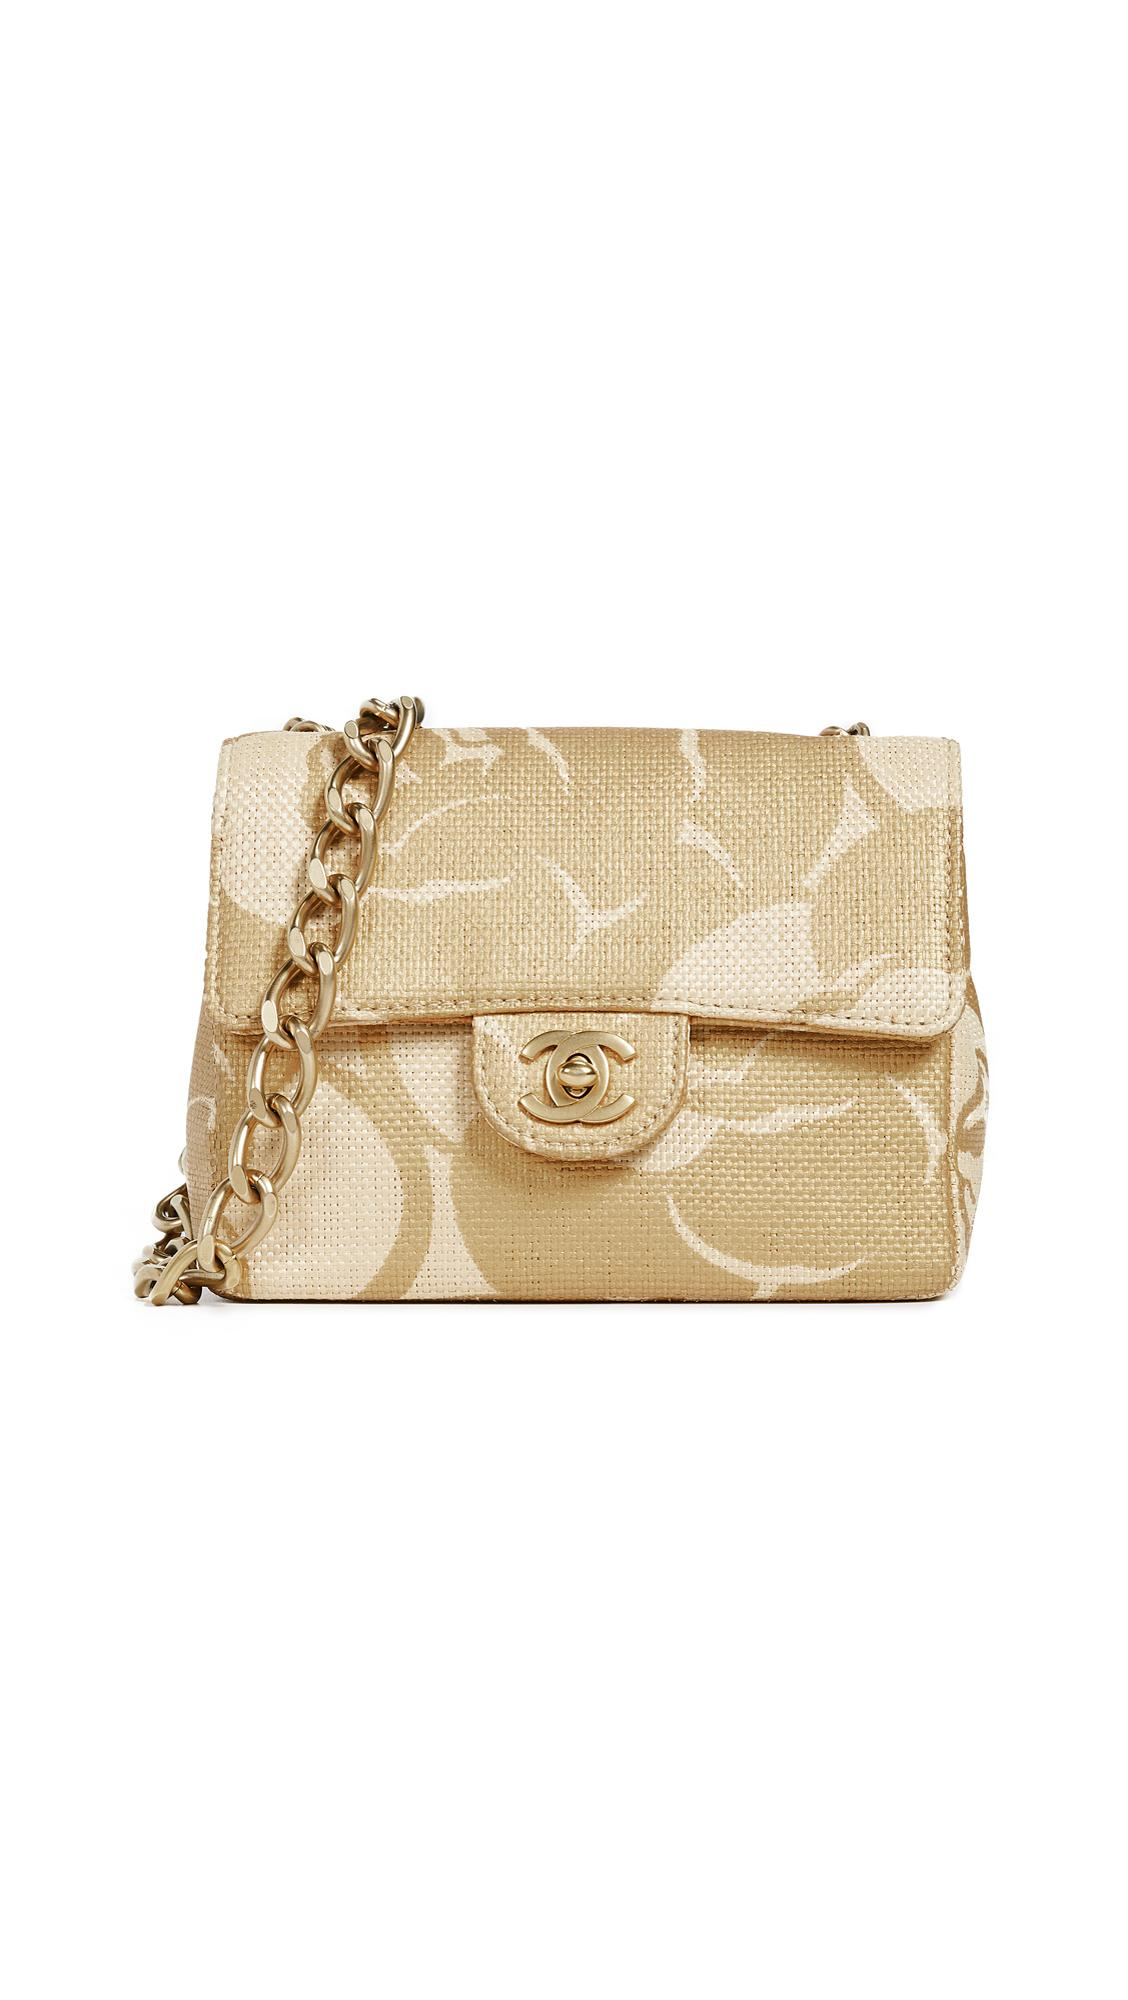 2c72913f5c4c What Goes Around Comes Around Chanel Beige Raffia Half Flap Mini ...